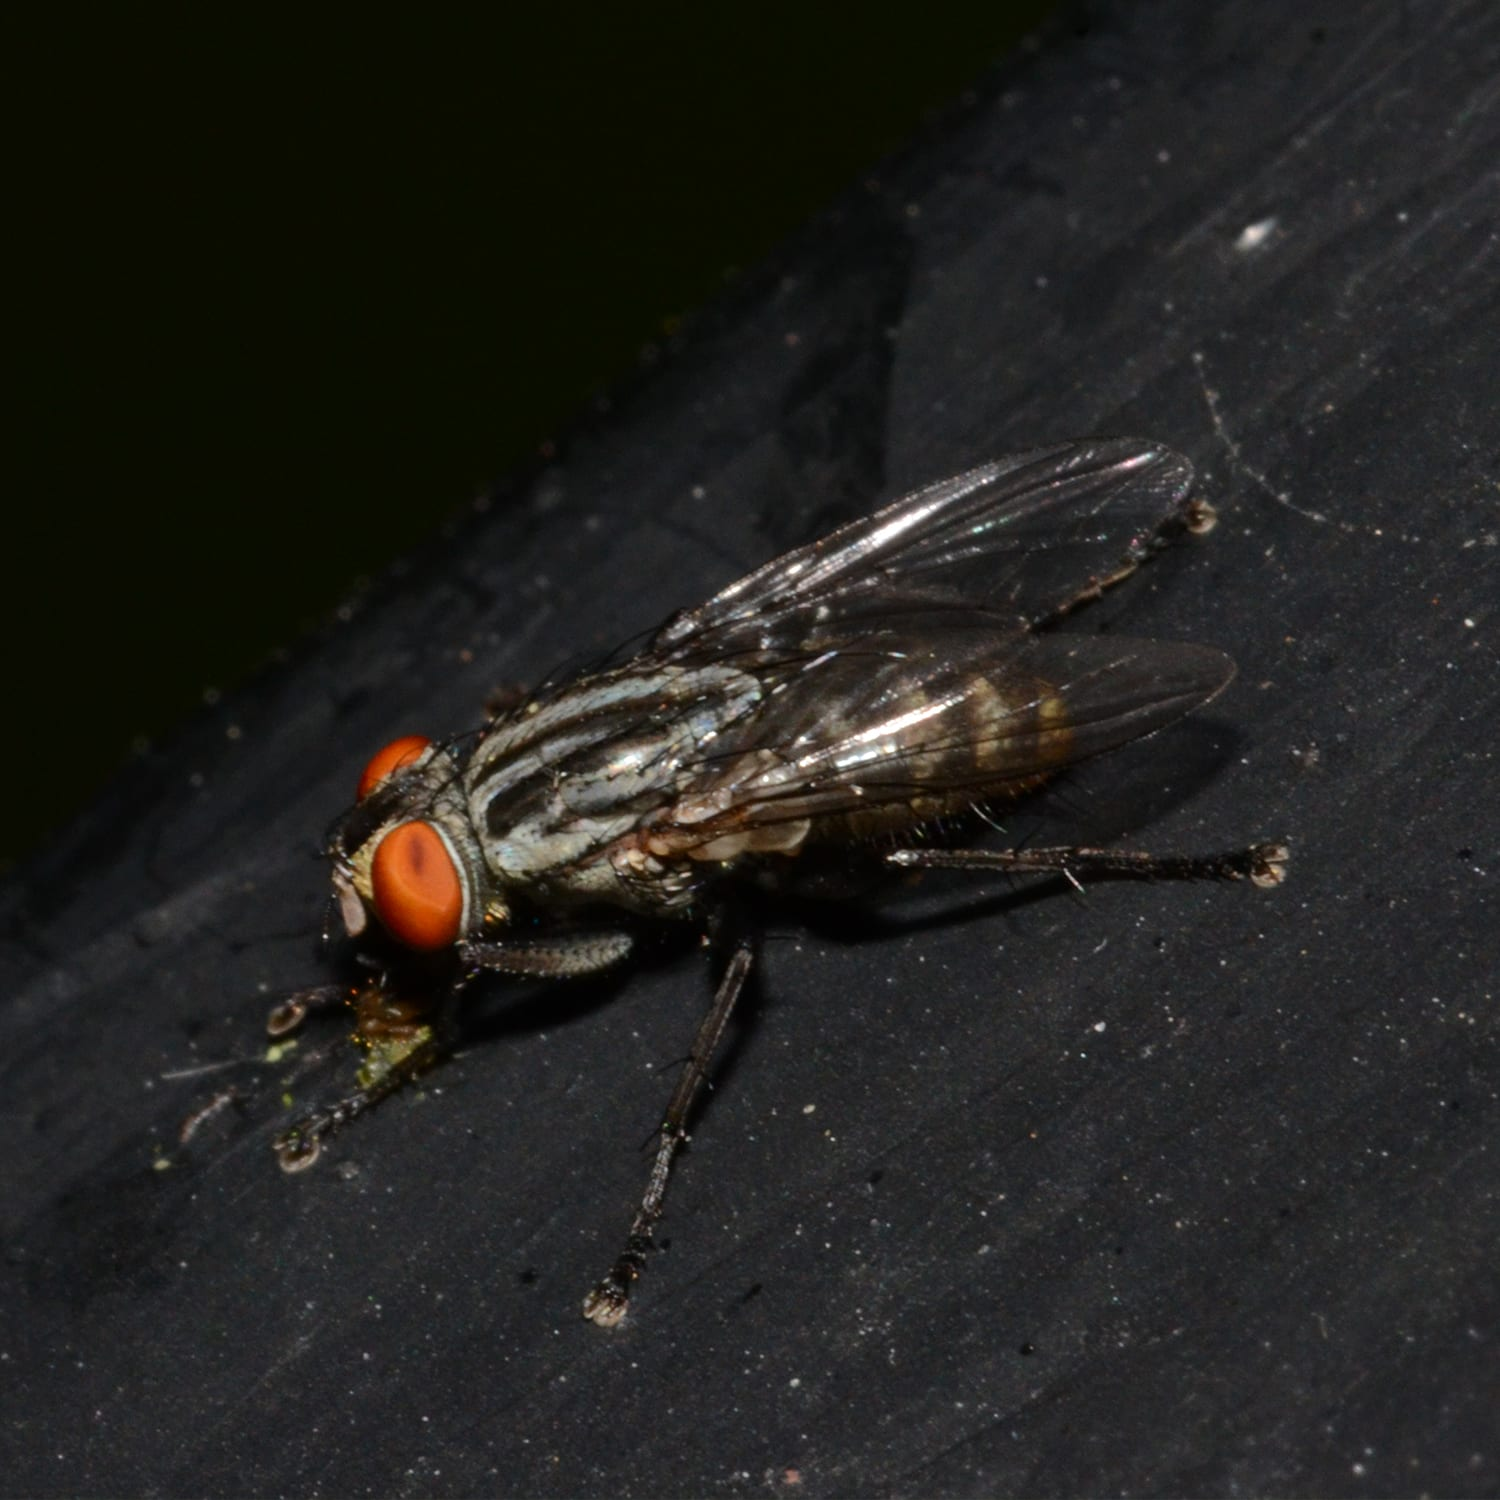 The Flesh Fly Back